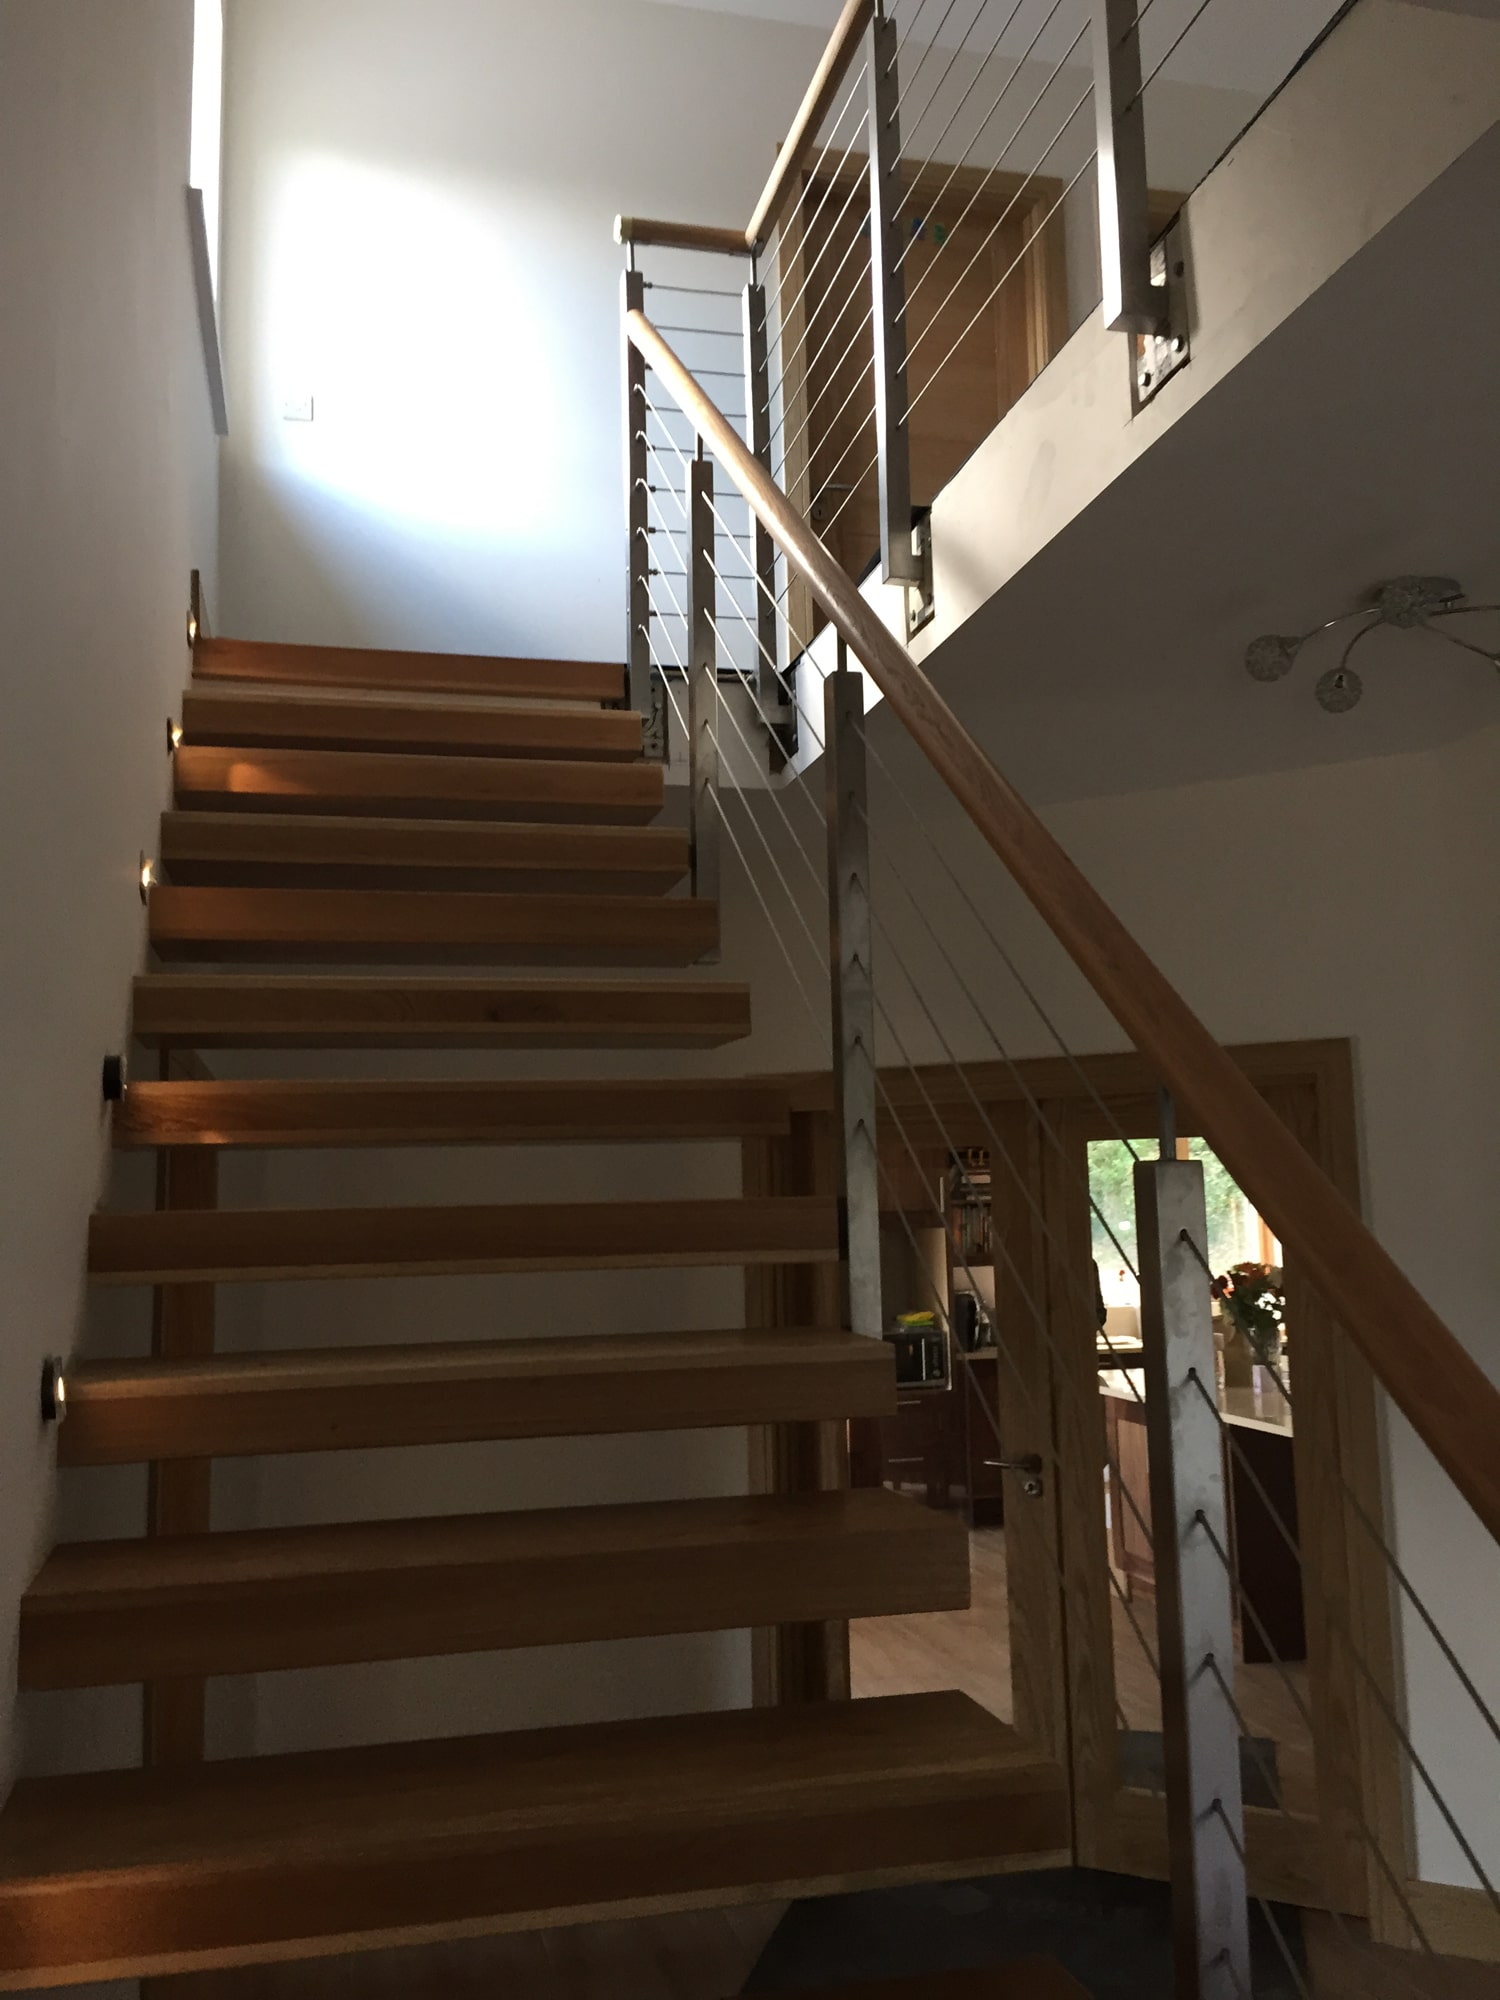 Architectural - SX Engineering - Floating stairs ss wire rope balustrade